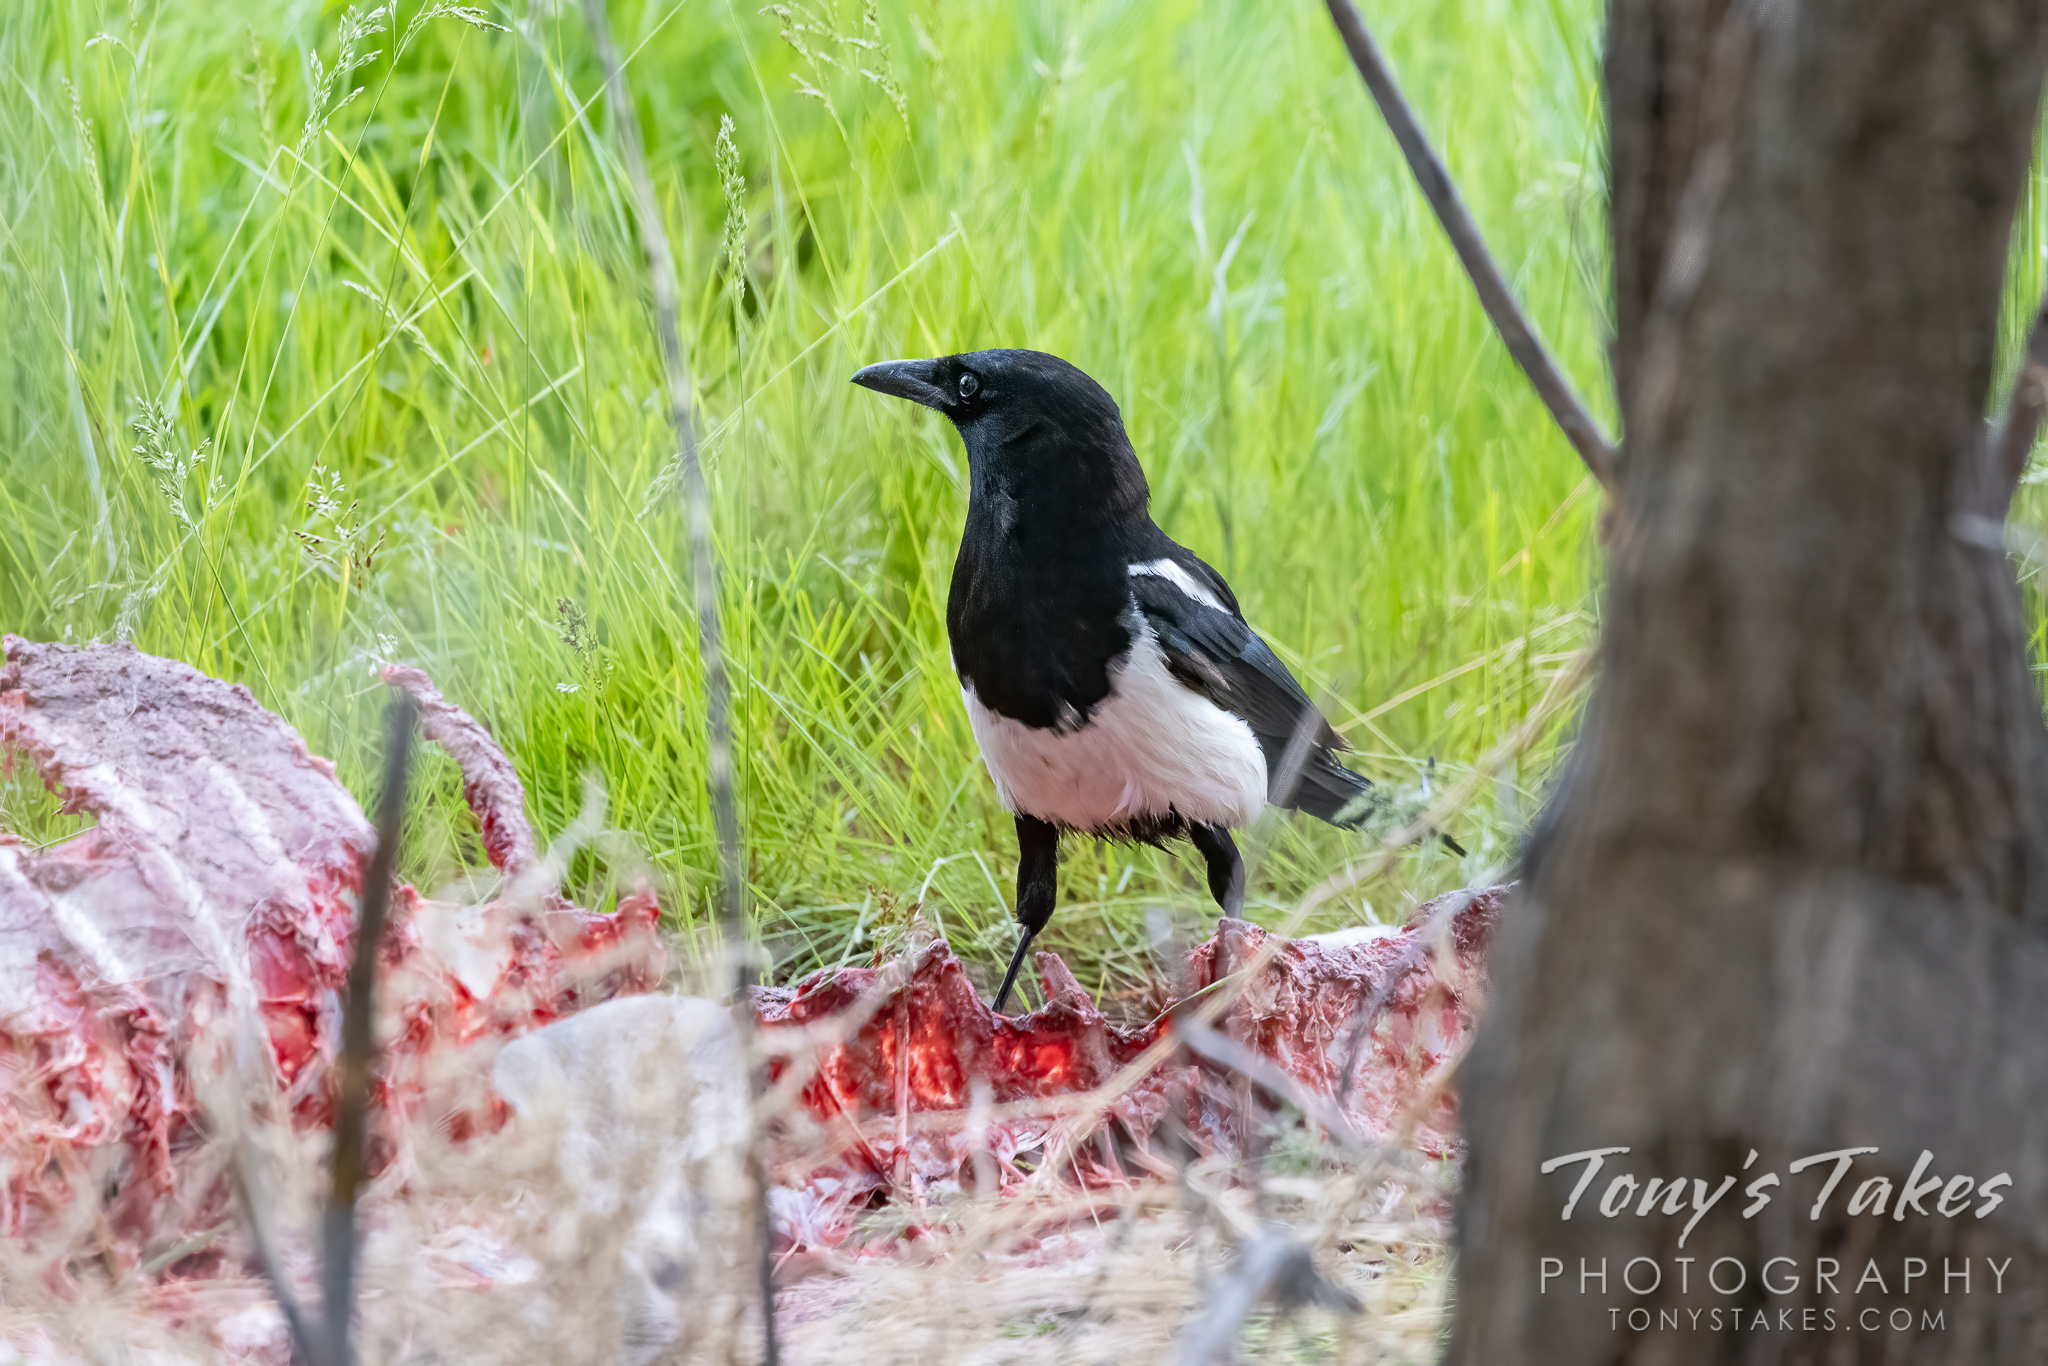 Magpie scavenges a meal